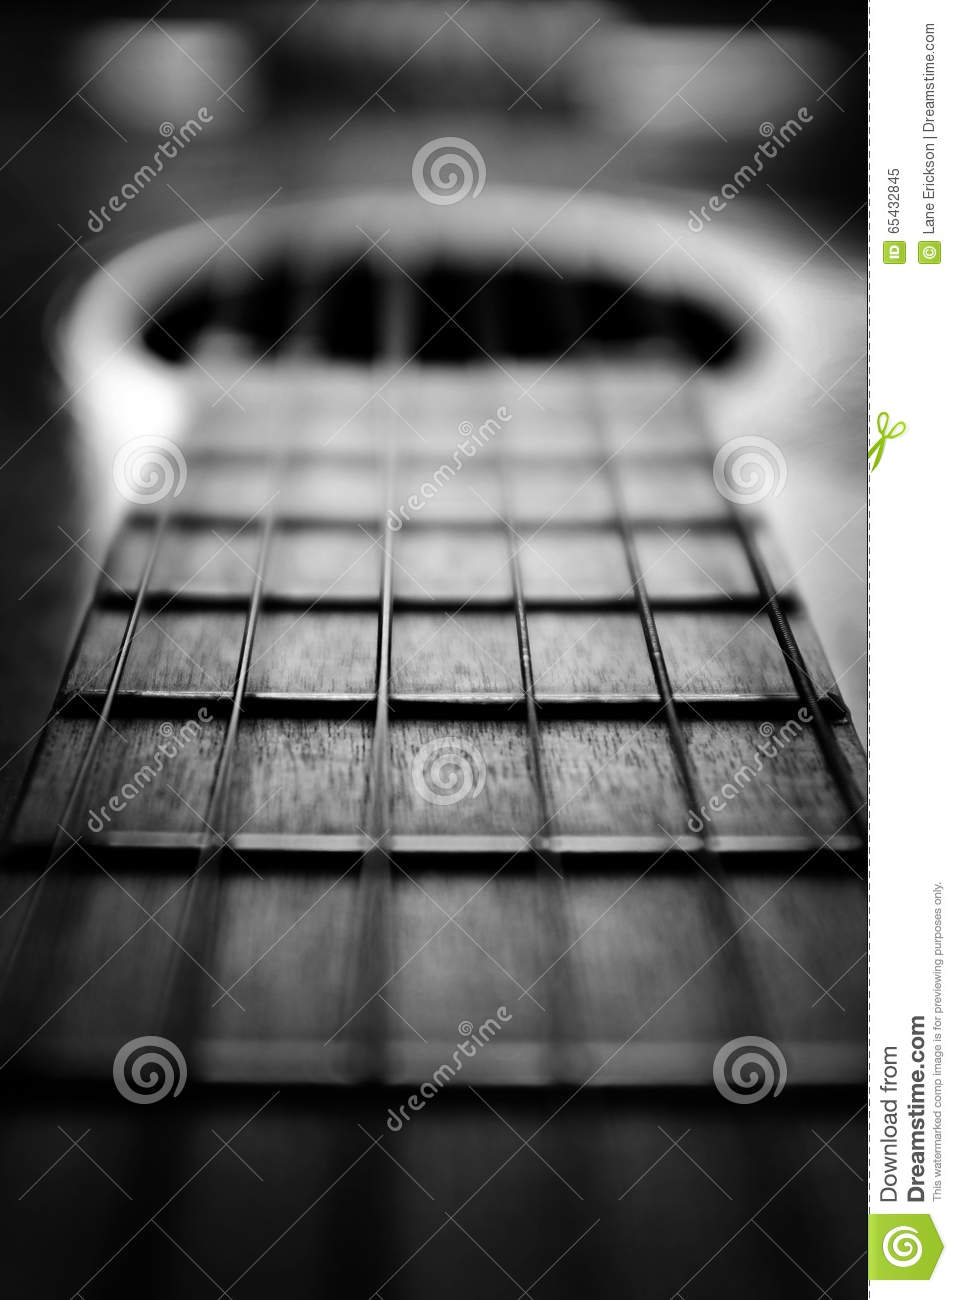 closeup of guitar strings for music stock image image of closeup acoustic 65432845. Black Bedroom Furniture Sets. Home Design Ideas